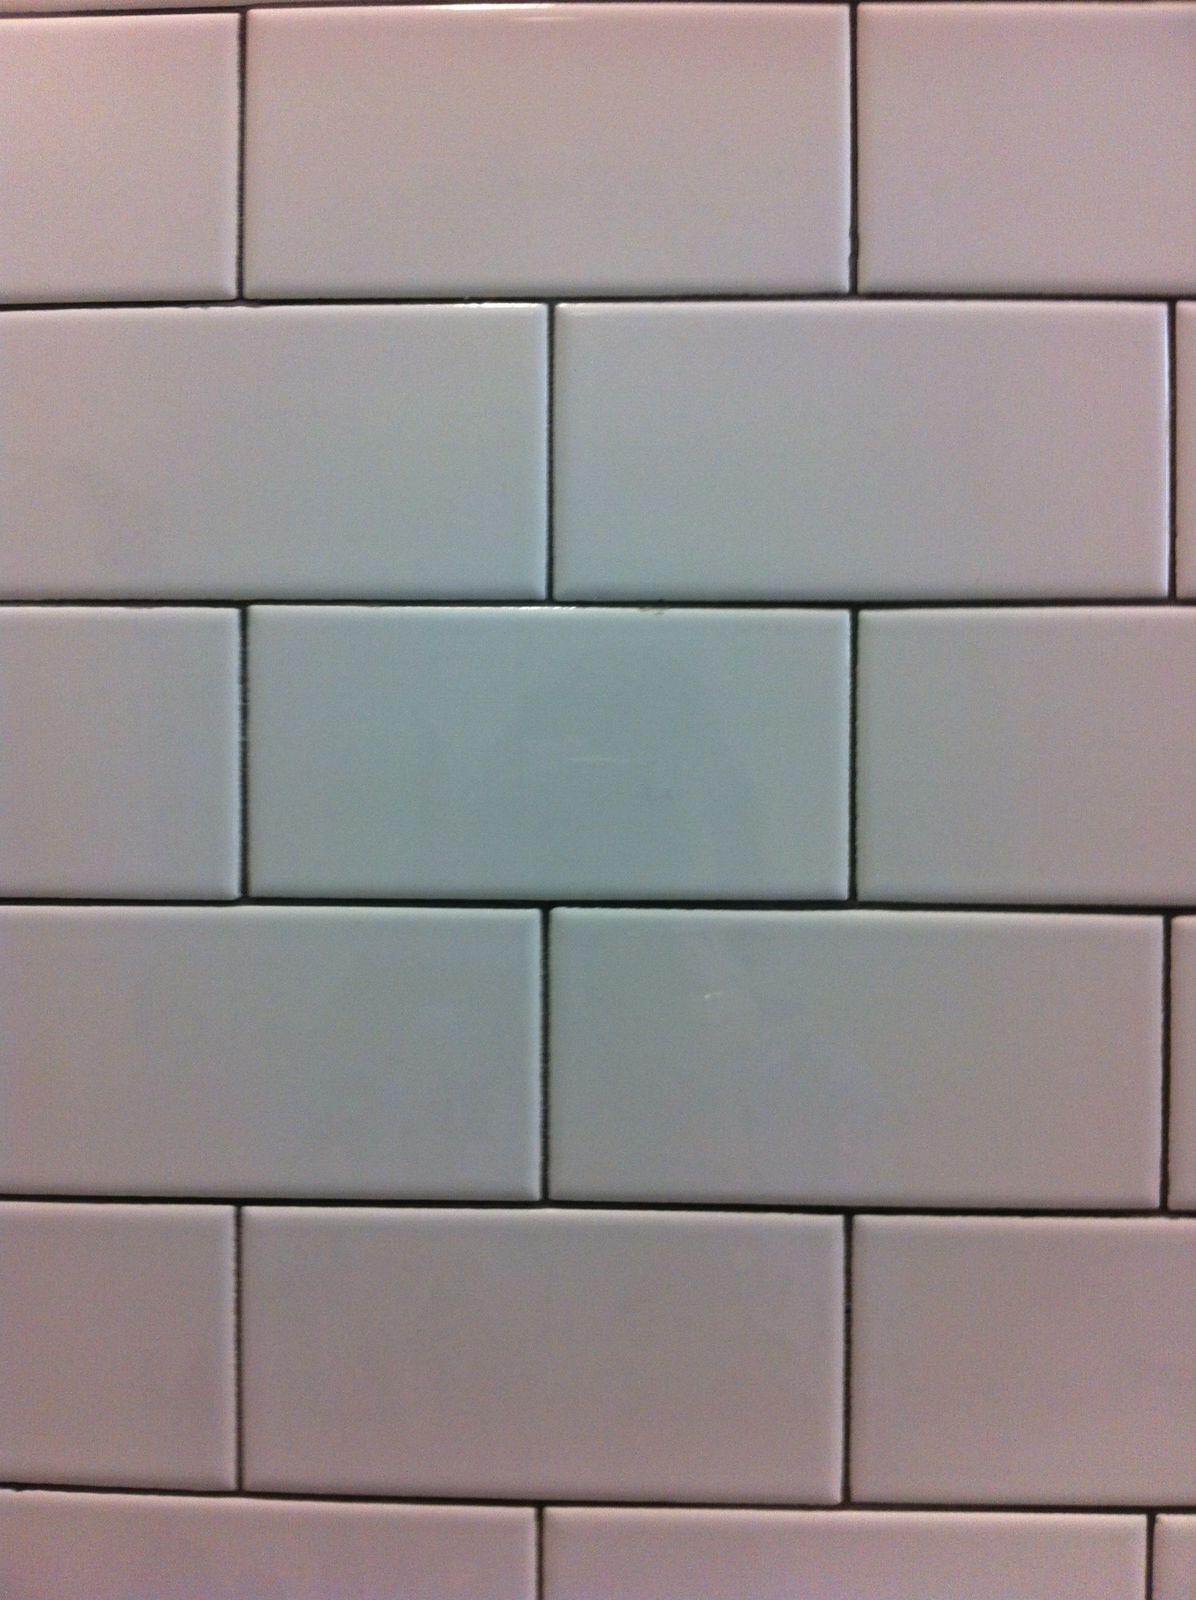 Grout Color For Backsplash Tile Pewter Or Too Dark Distracting